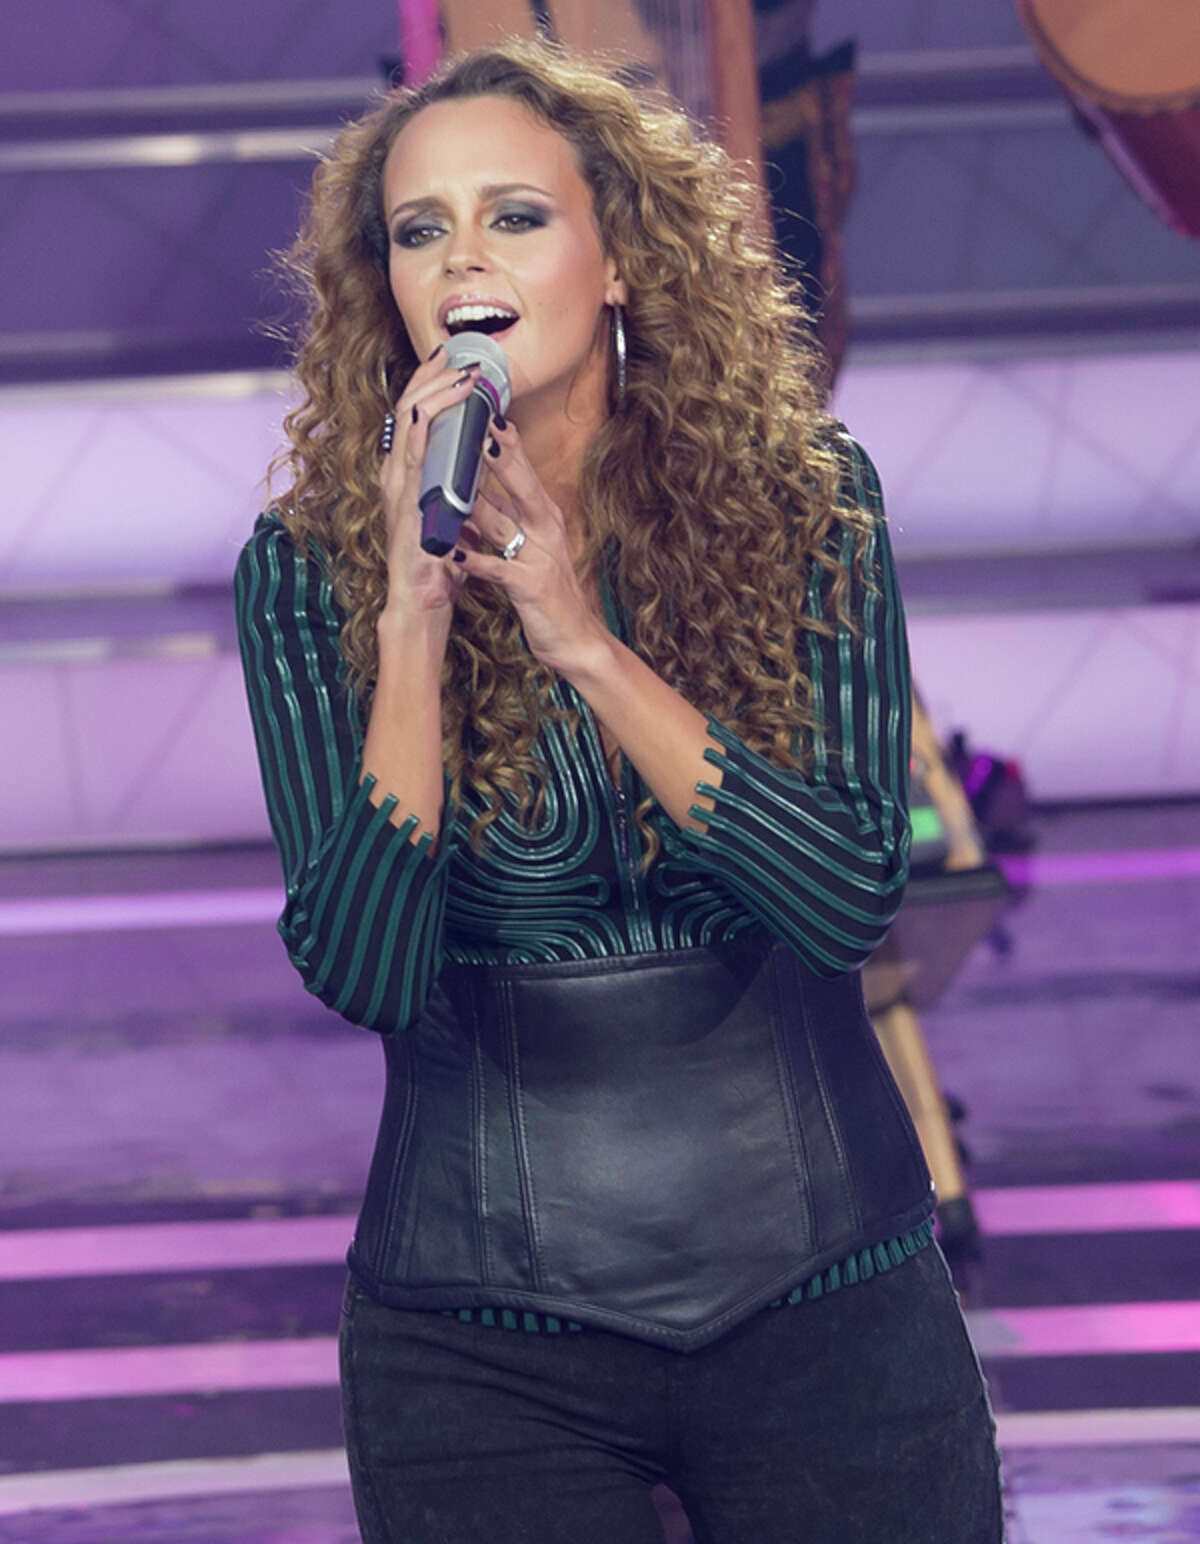 Shaila Durcal (born Shaila de los Angeles Morales de las Heras born on August 28, 1979) is a ranchero and pop Spanish singer-songwriter best known for being the daughter of singing legend Roc o D rcal.